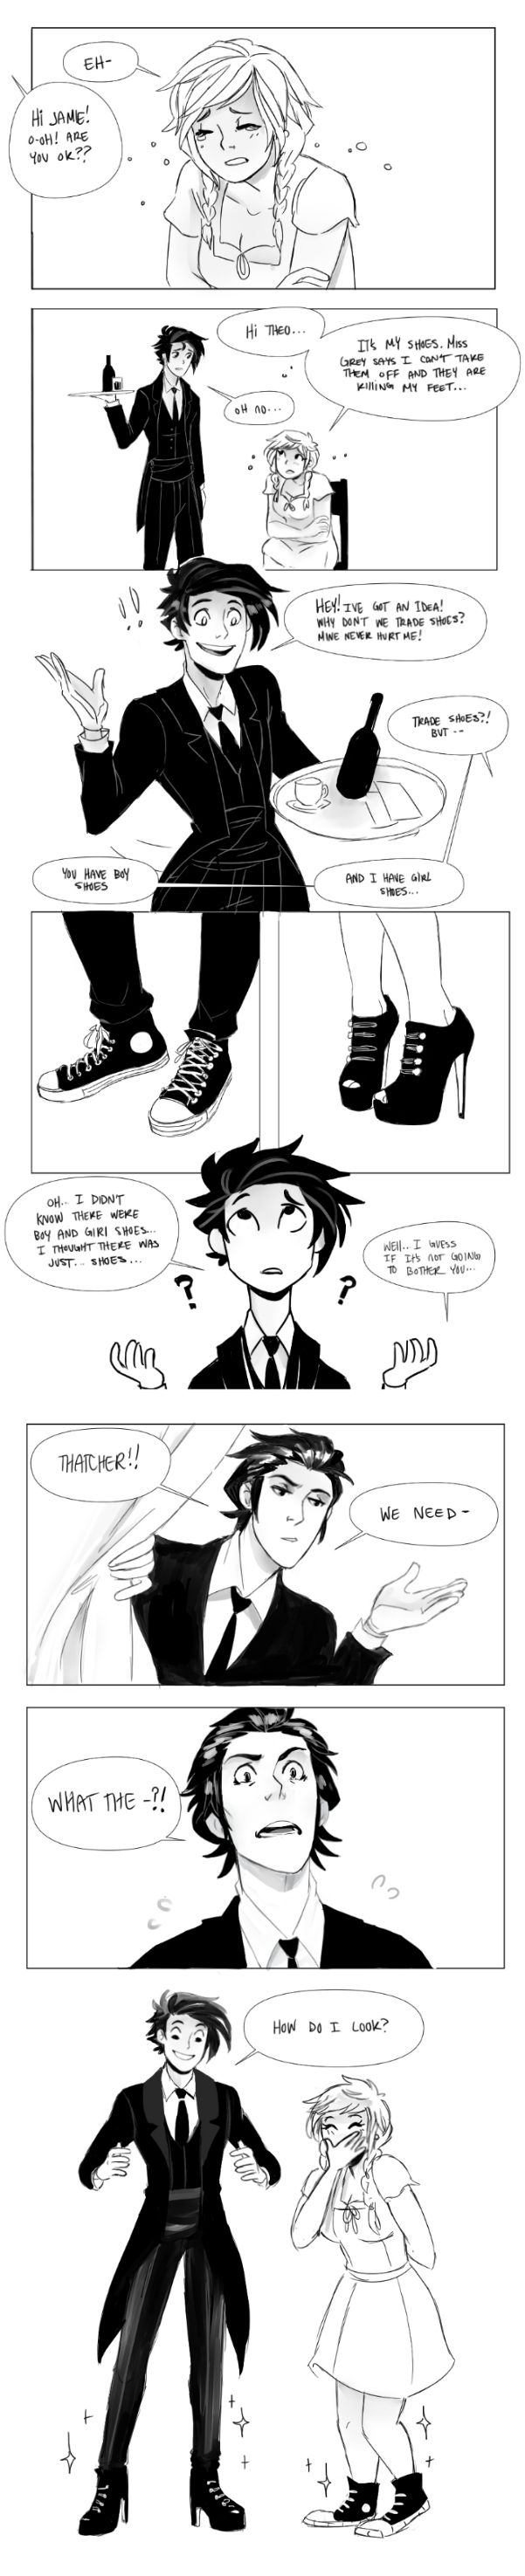 Shoes by PrinceCanary.deviantart.com on @DeviantArt